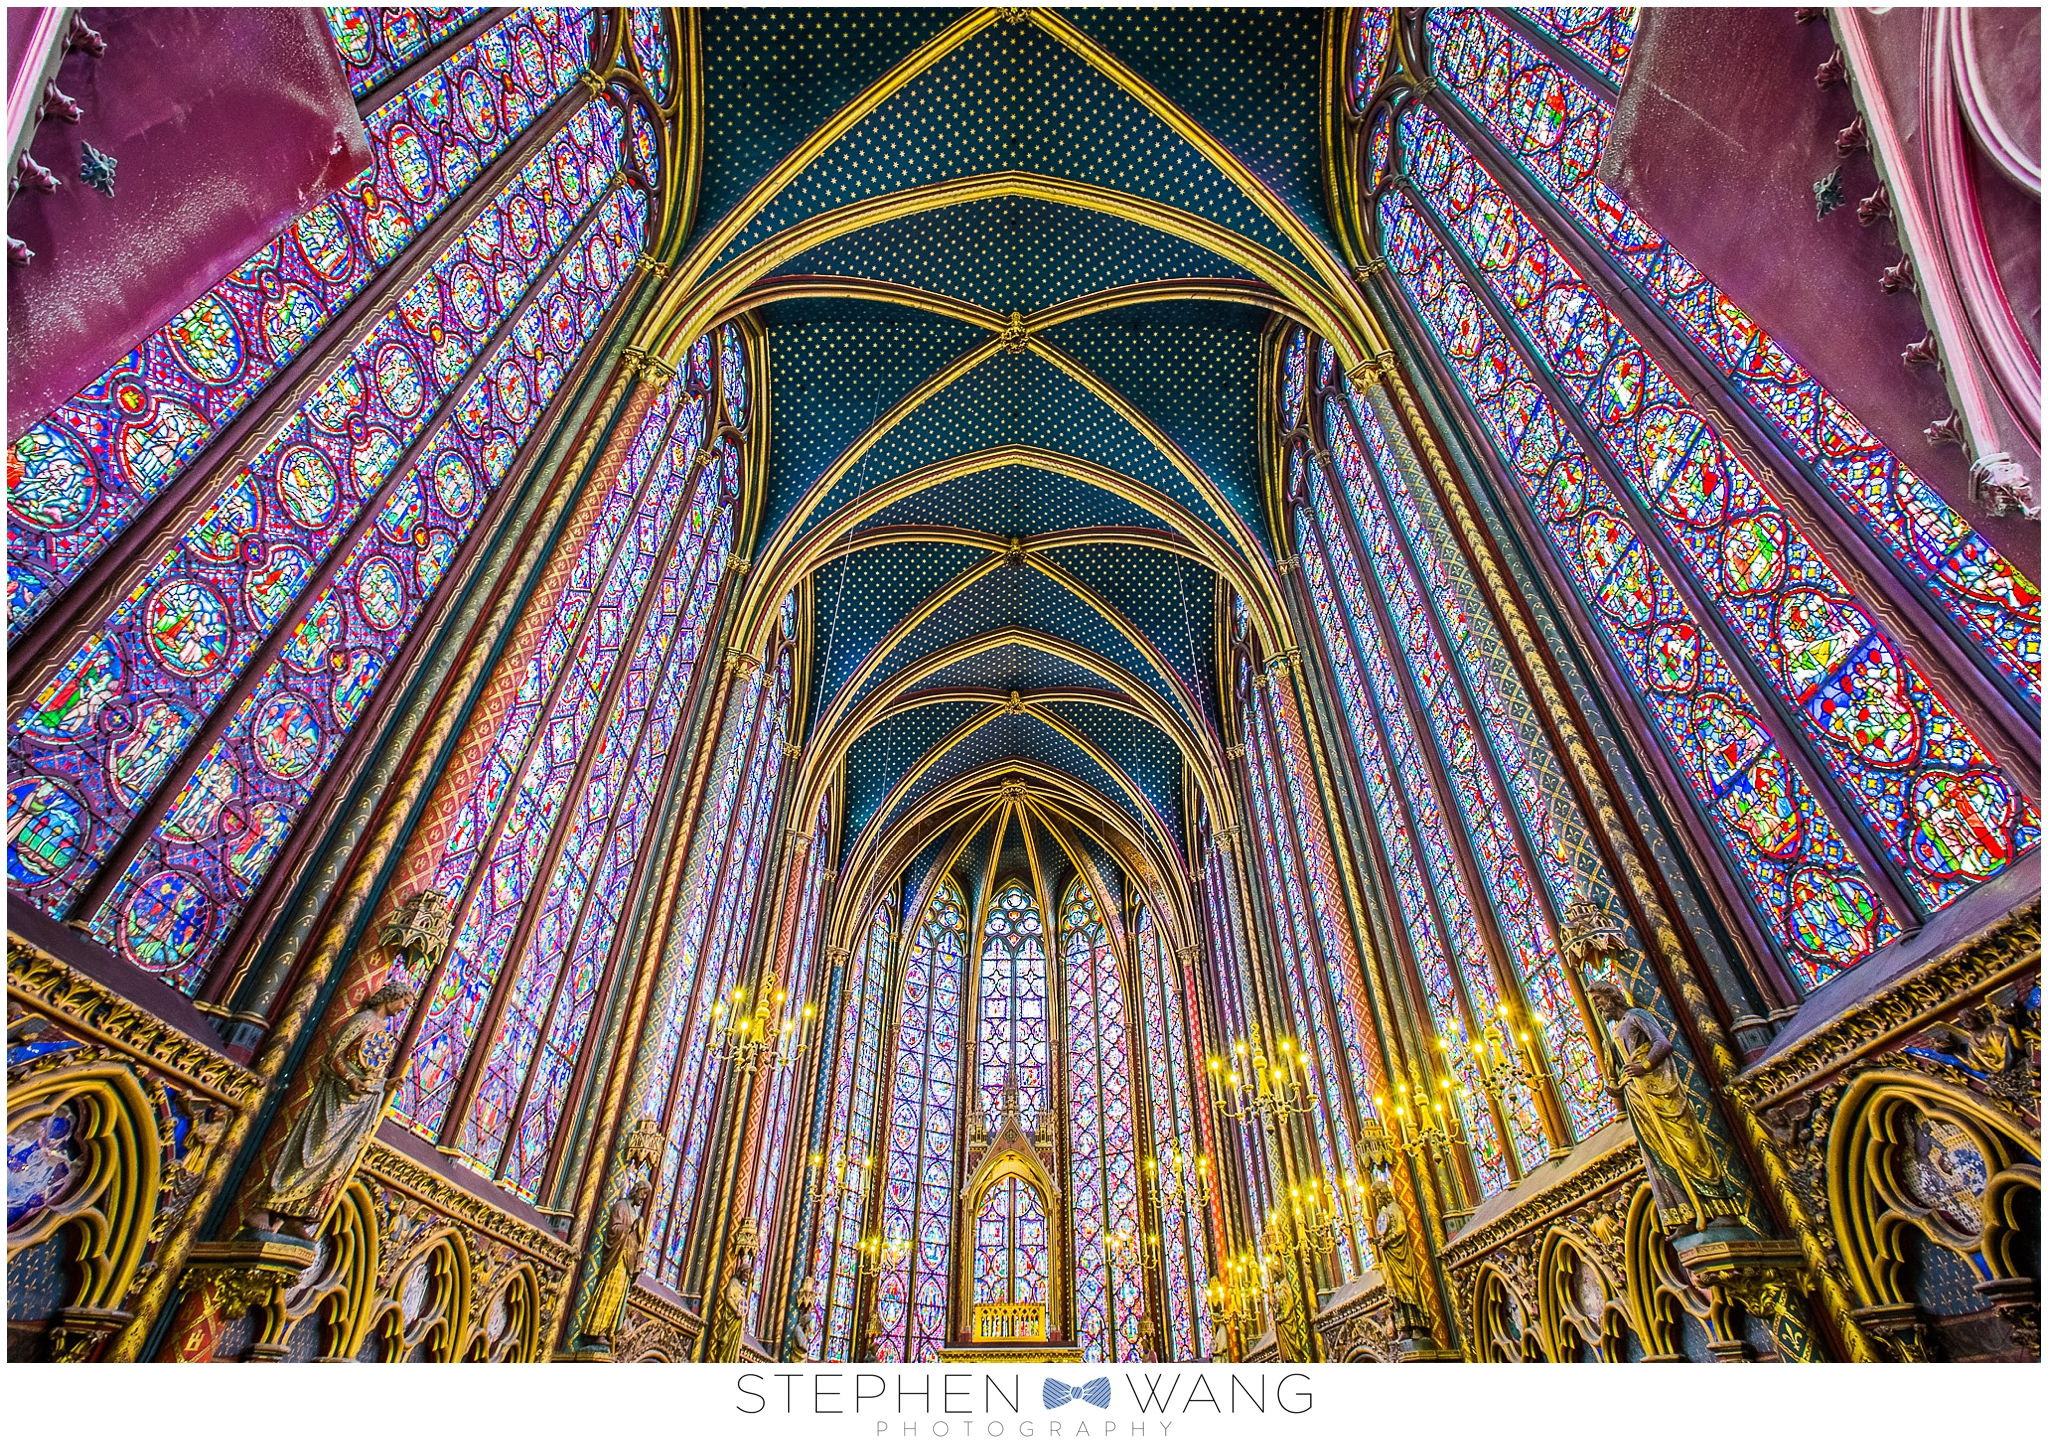 Sainte Chappelle was absolutely stunning.  I've never seen anything with such ornate detail.  It was built to house King Louis IX's collection of relics of Christ, including his crown of thorns.  The chapel is 750+ years old, which is crazy to think about.